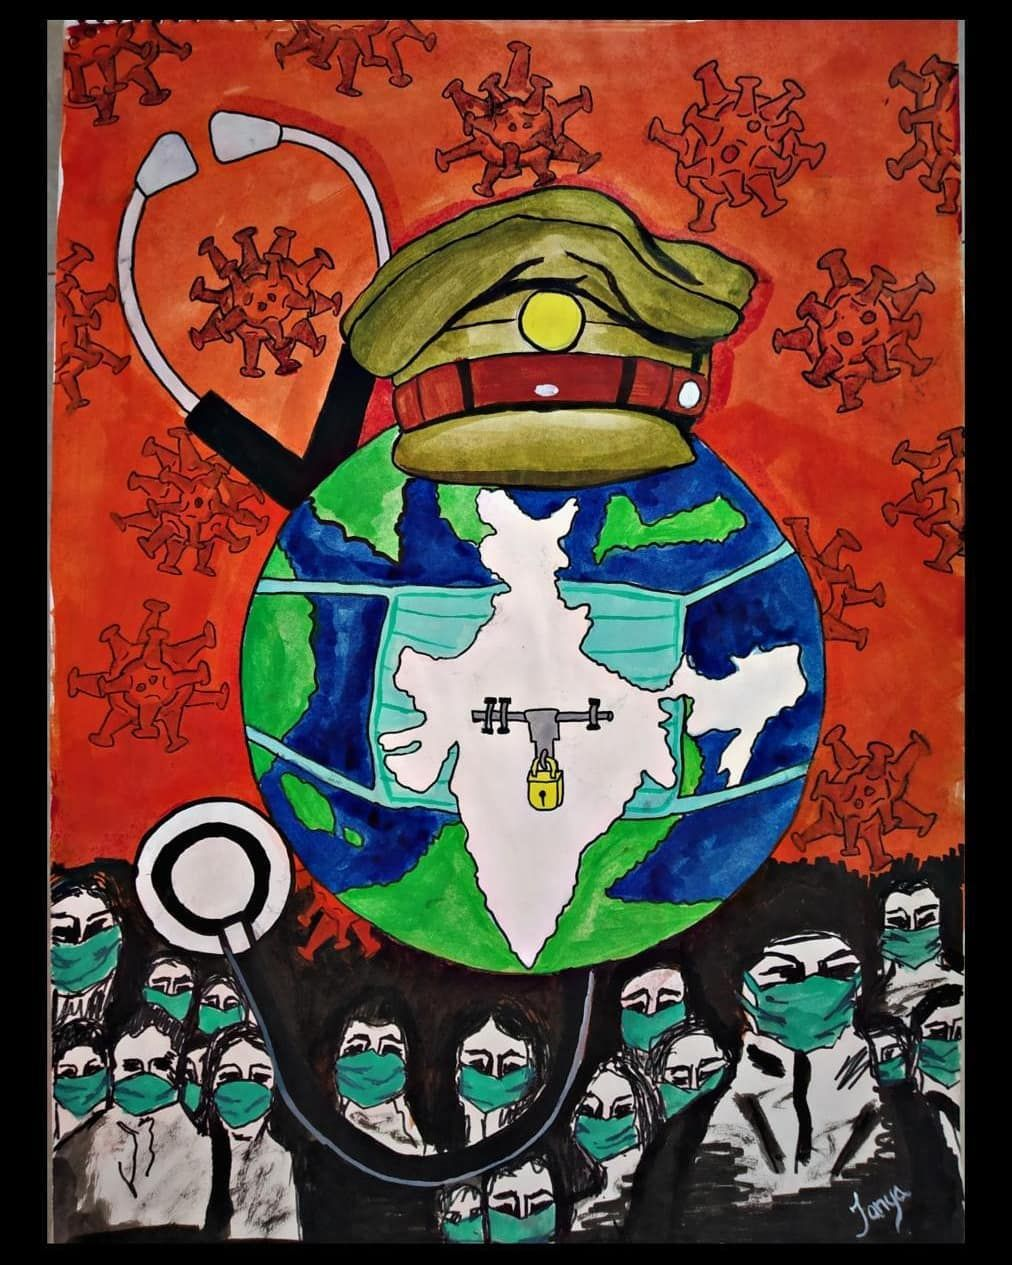 Artist Tanya Rastogi Title Unity To Save Humanity Coronavirusoutbreak Corona Artlovers Artchal In 2020 Art Poster Design Drawing Competition Environmental Art